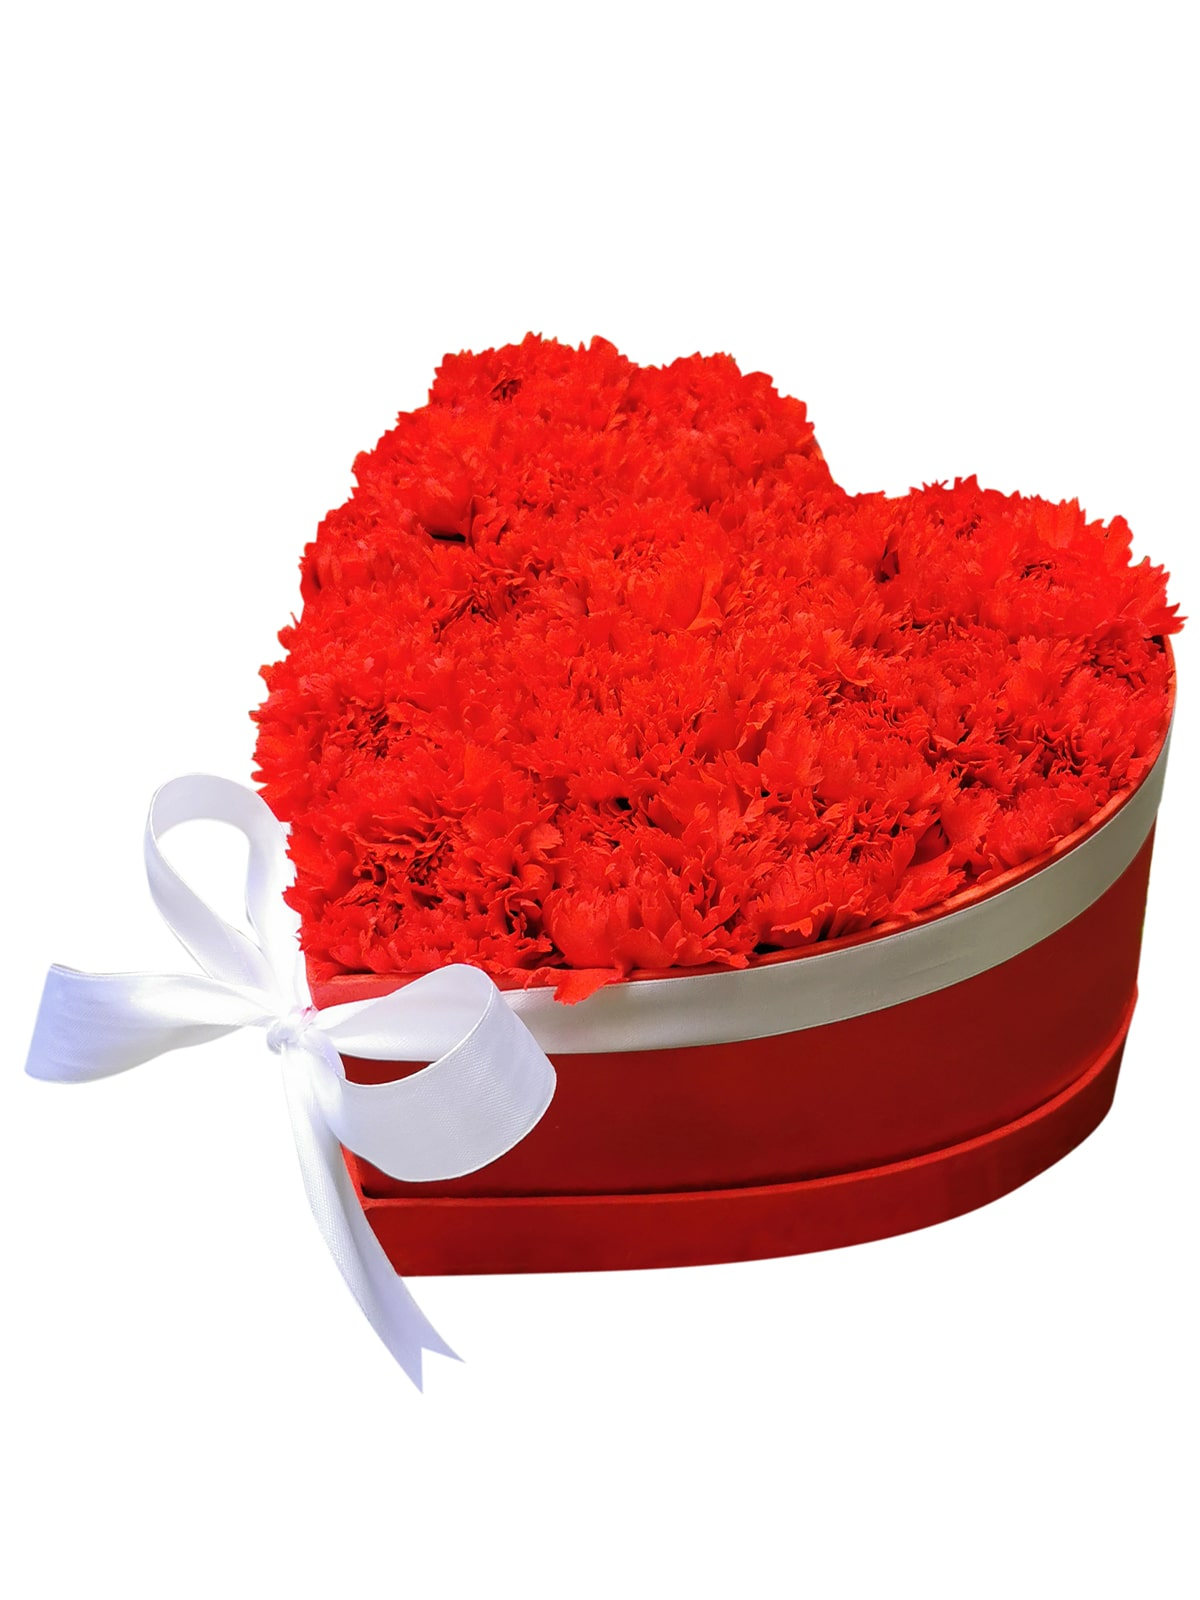 125 Red Carnation Heart Love Box 001